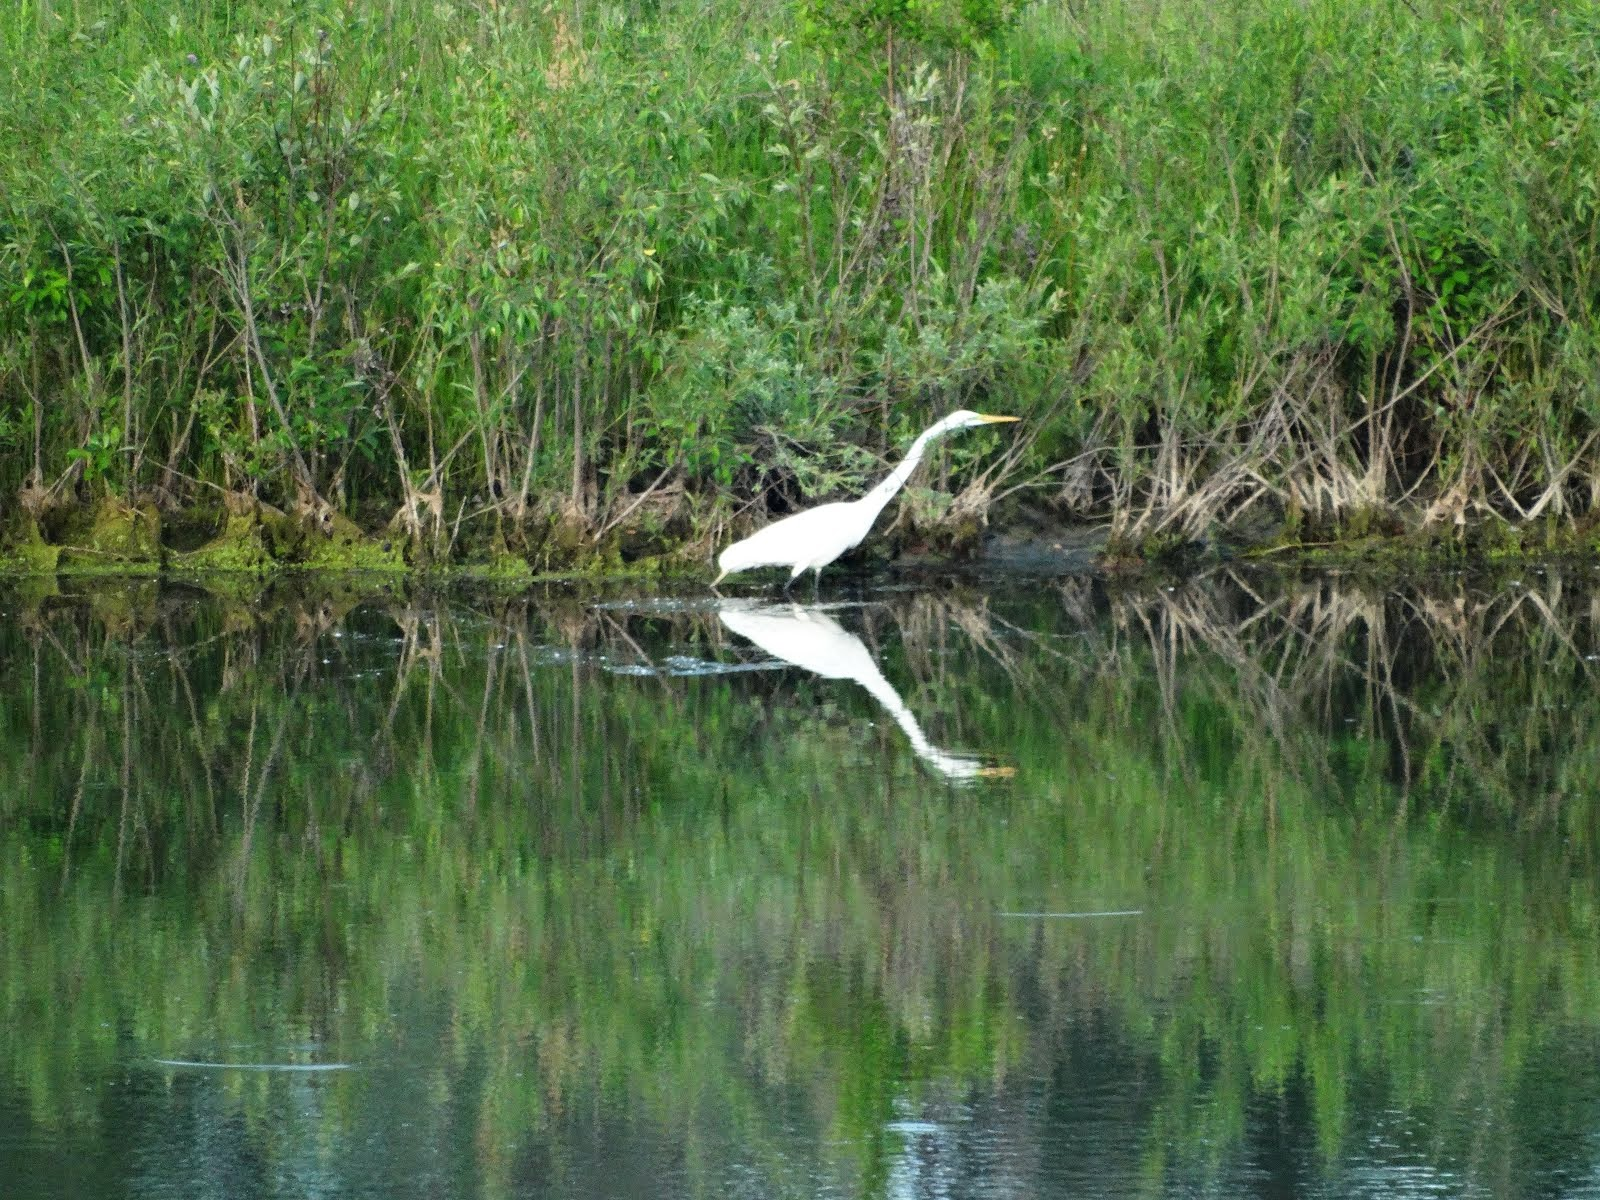 Great Egret on the Pewaukee River